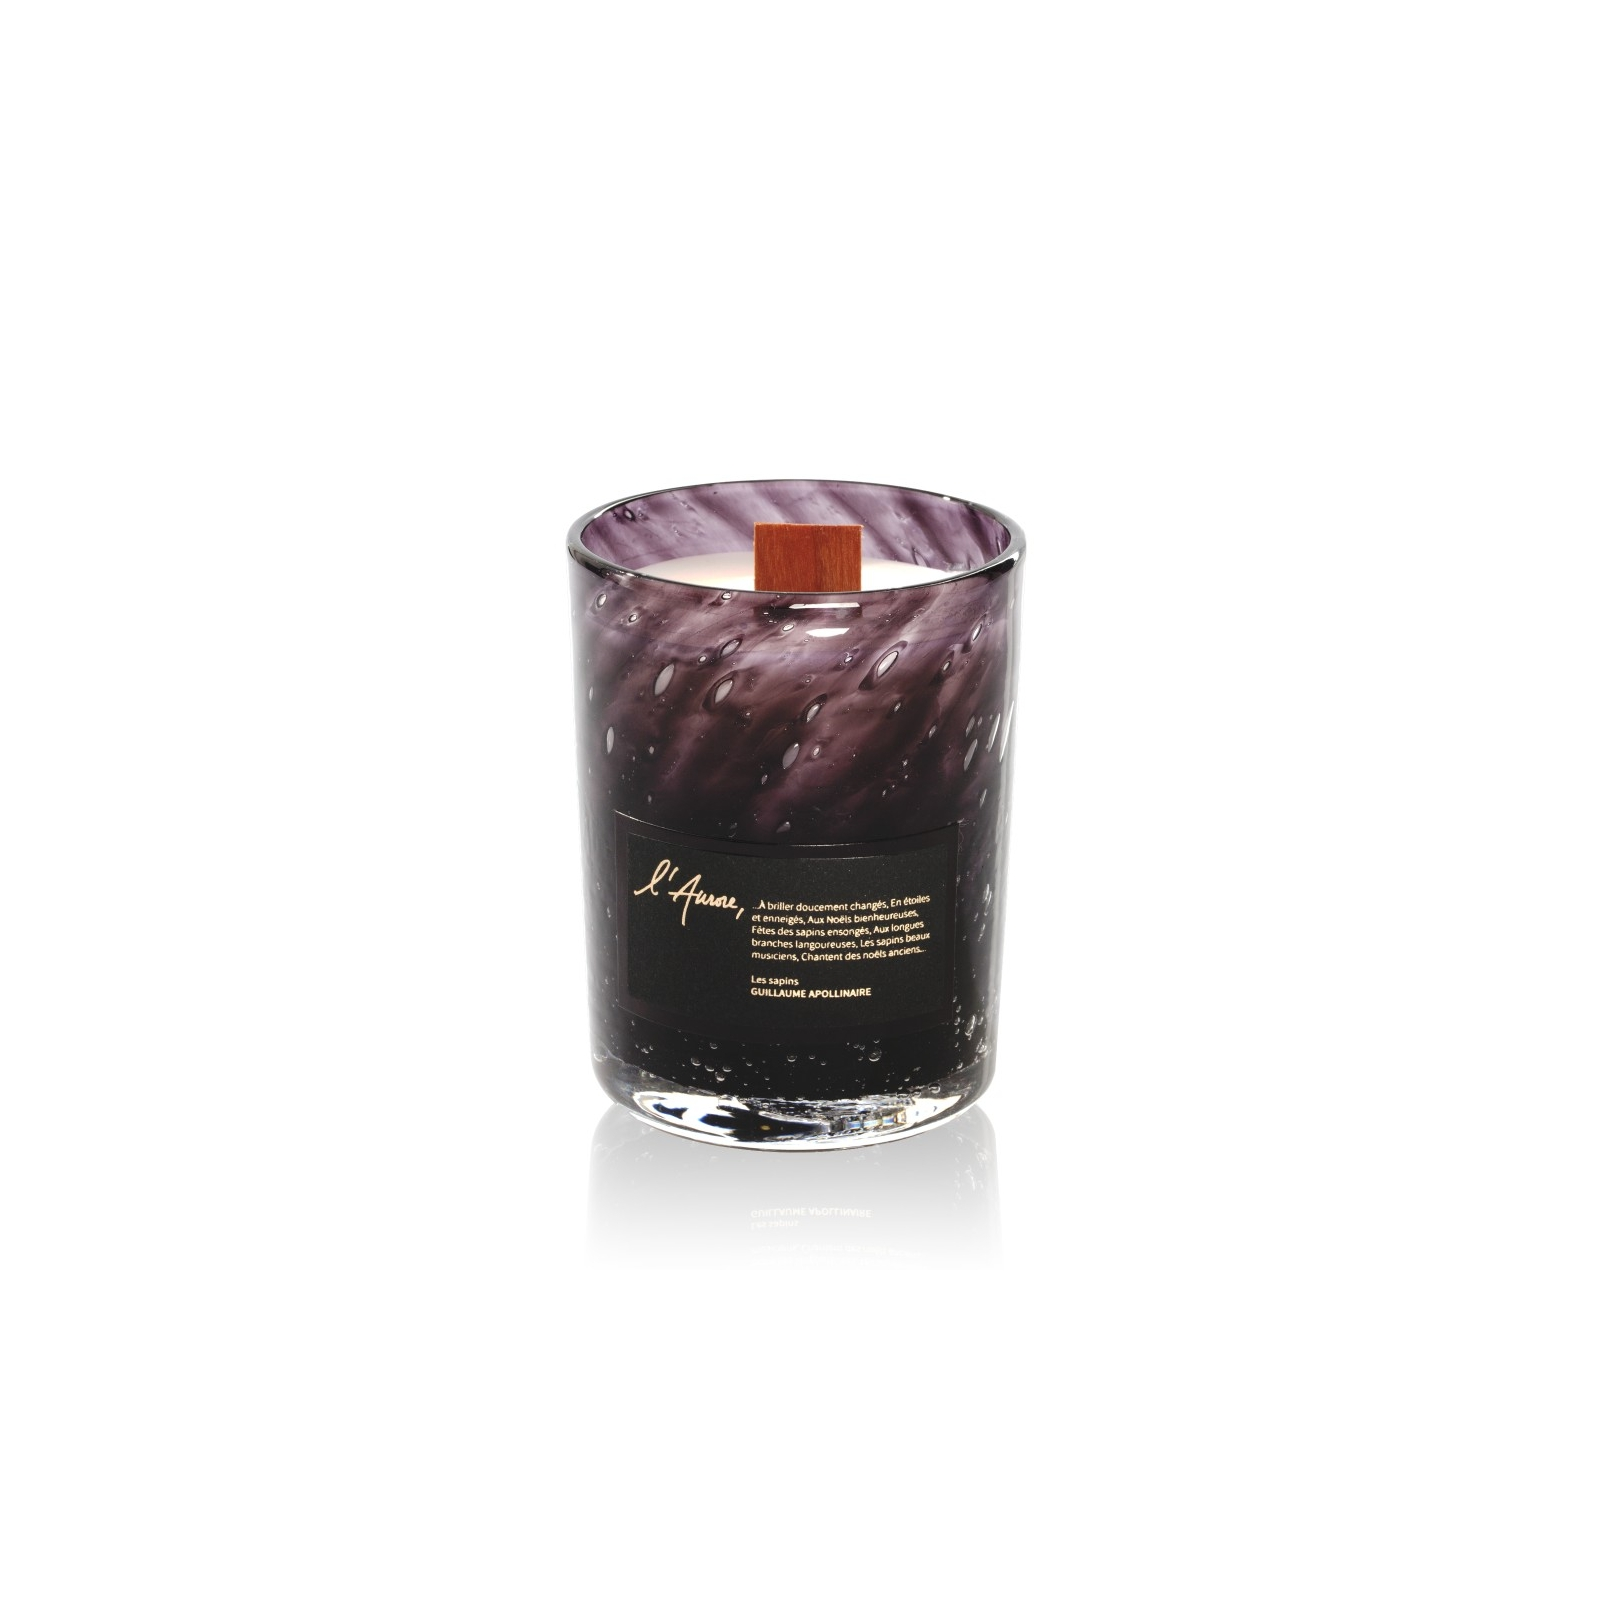 Scented candle LES SAPINS (biscuit, gingerbread, cinnamon)